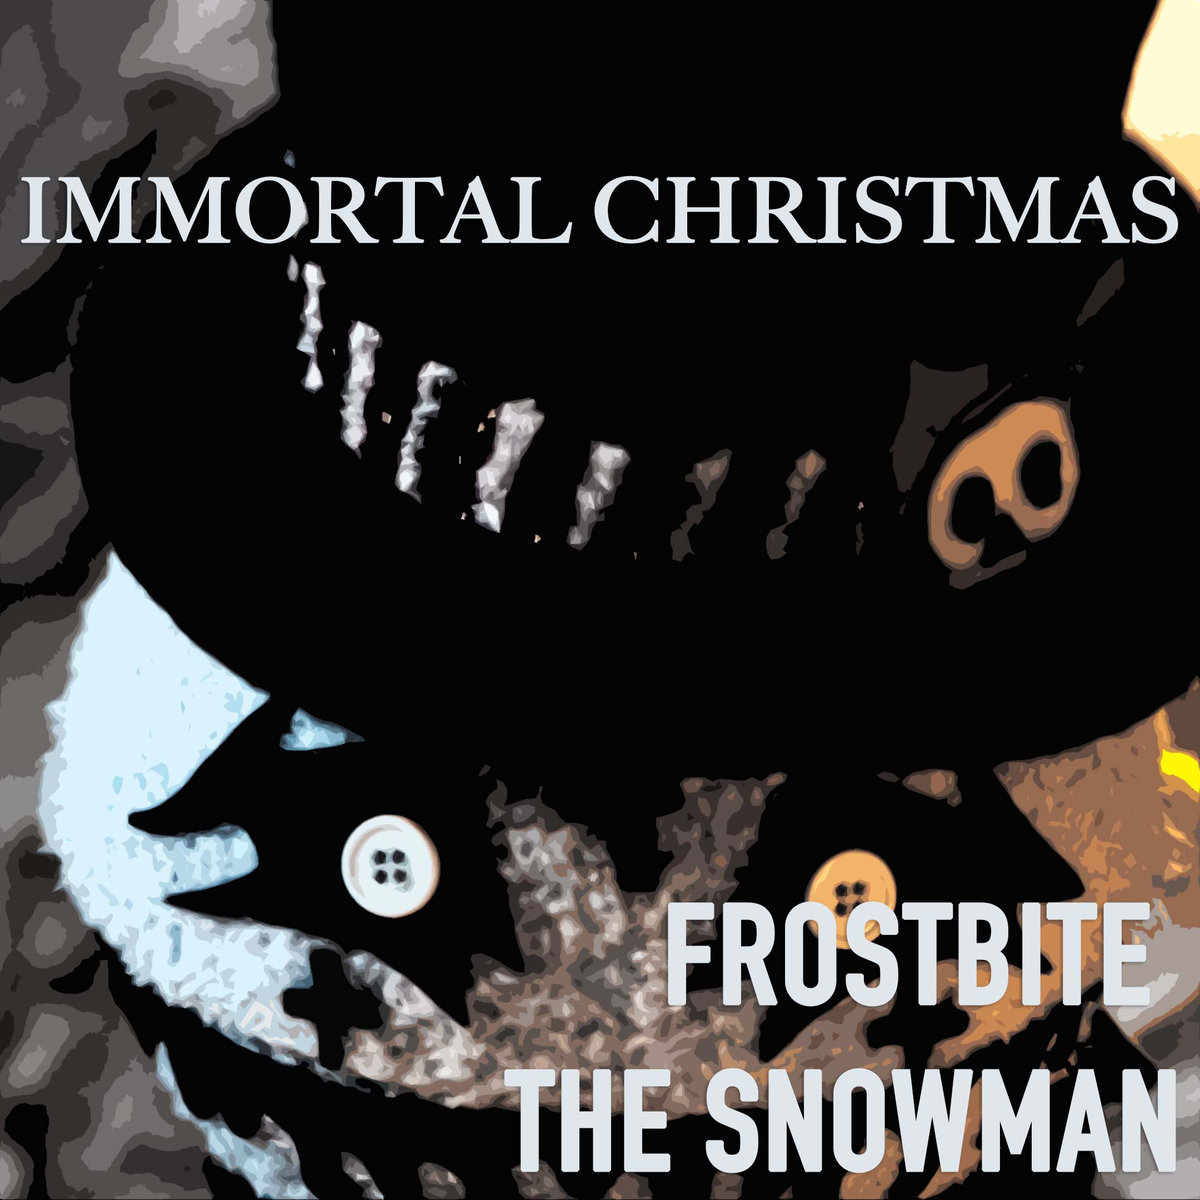 Immortal - Frosty The Snowman - Single Cover